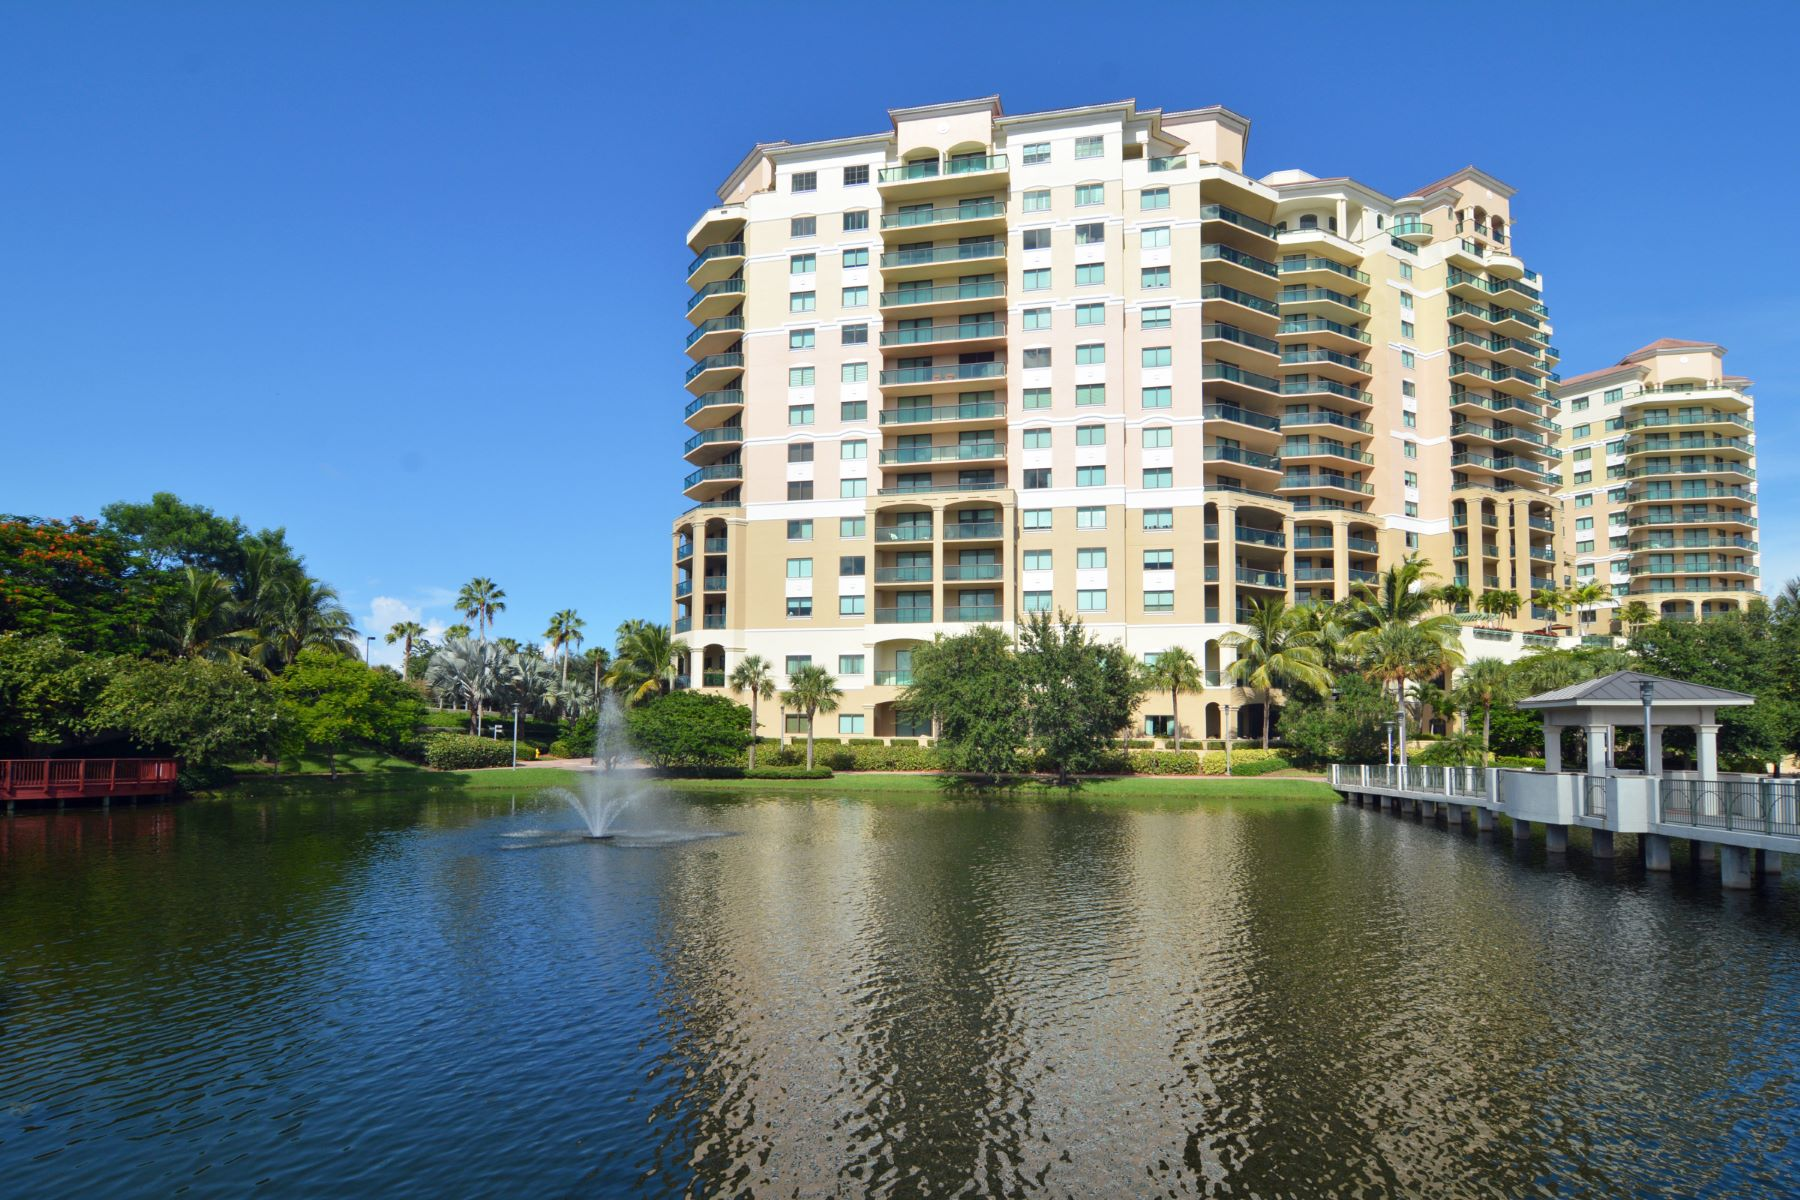 Condominiums for Sale at 3630 Gardens Parkway 103c, Palm Beach Gardens, Florida 33410 United States